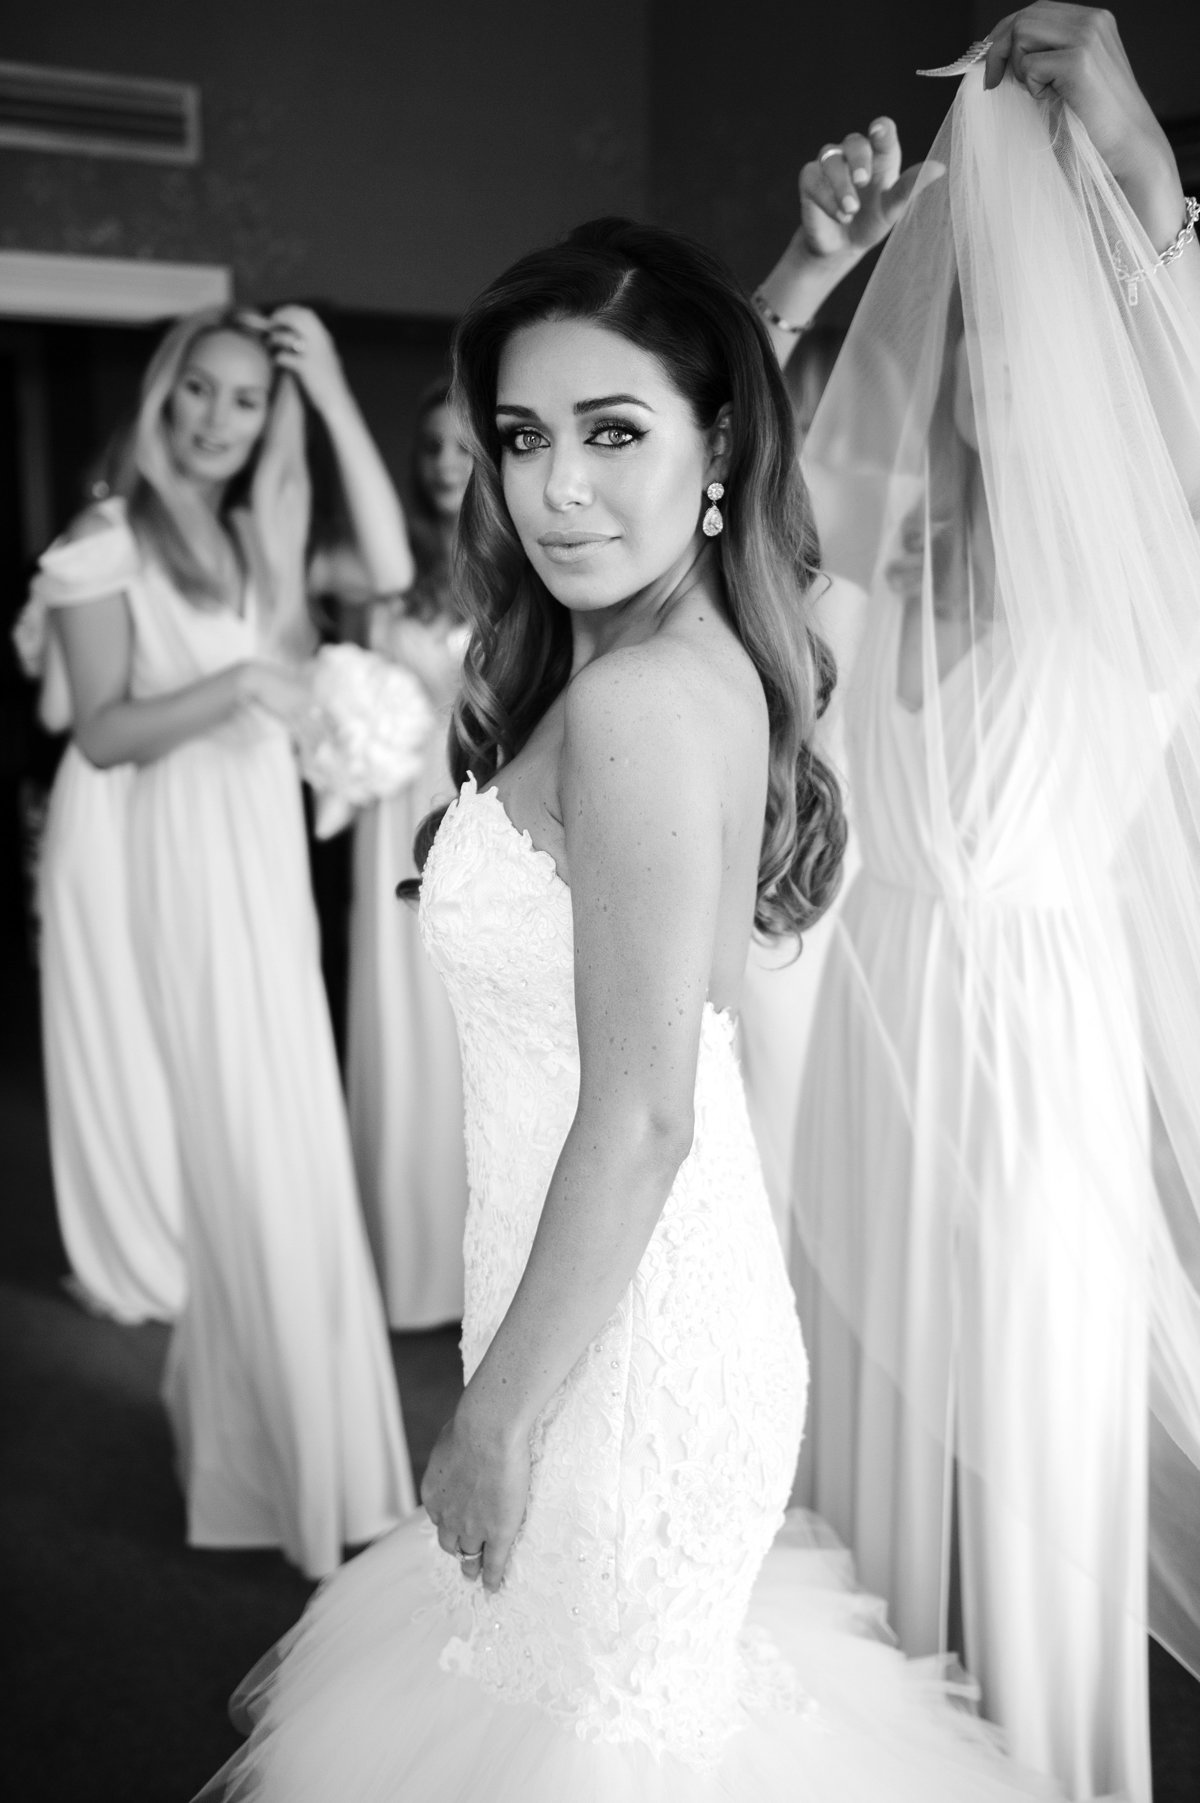 Stubton Hall Wedding Photographer Ross Holkham-8